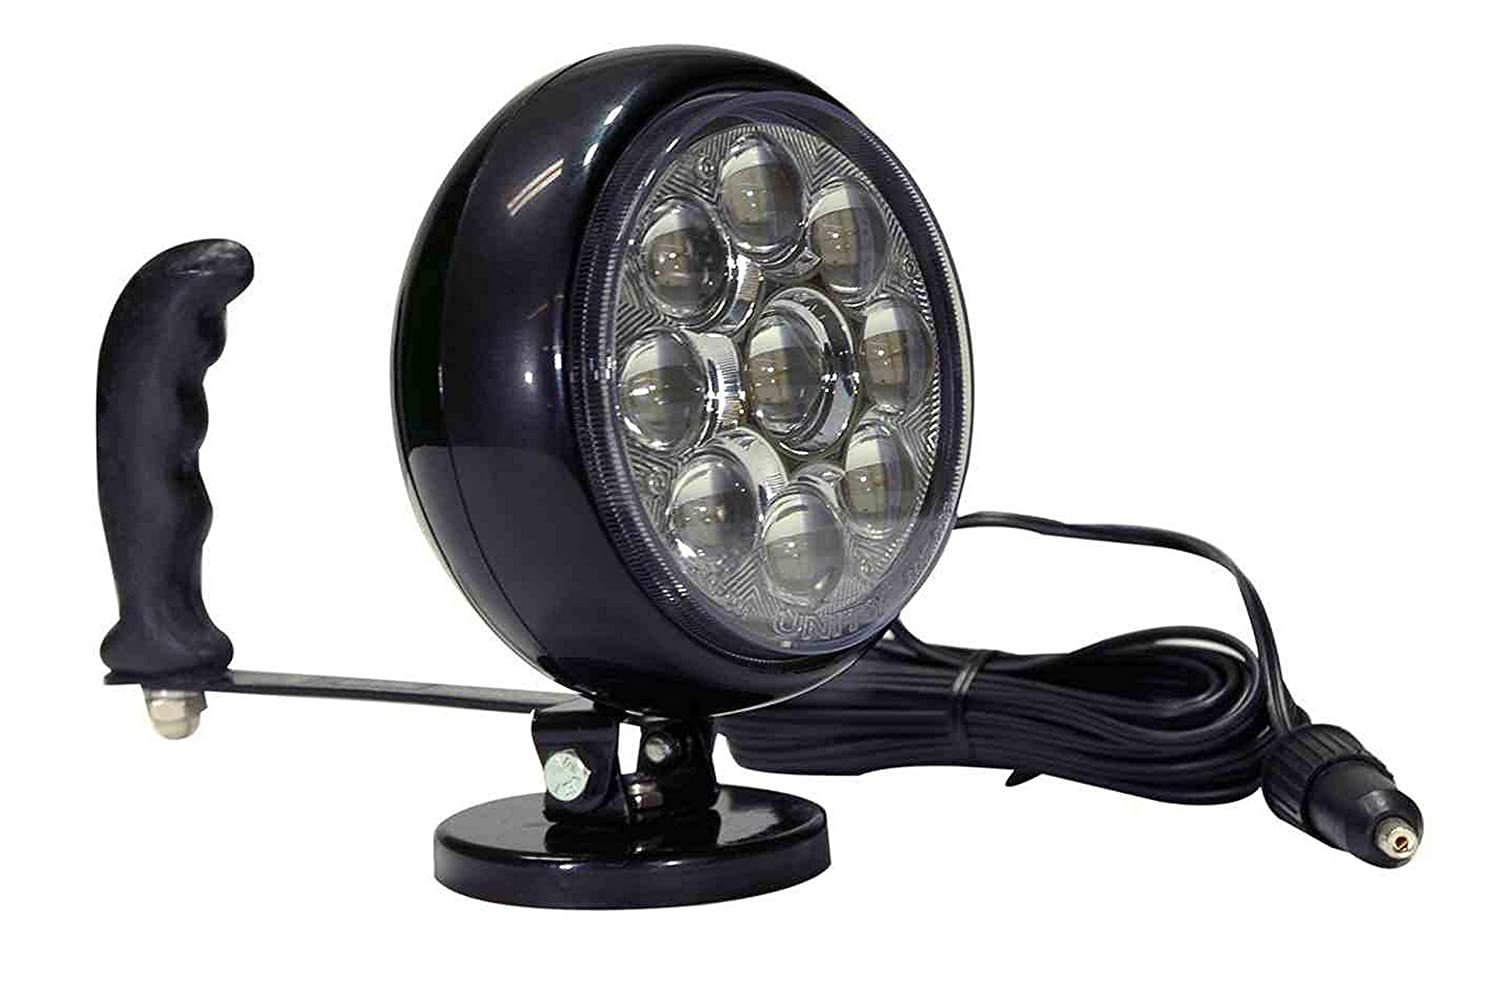 Hand Magnetic LED Spotlight Larson Electronics 0321OXALRO4 -Ring Terminals 215,000 candlepower Adjustable Tilting Base 30 Watts